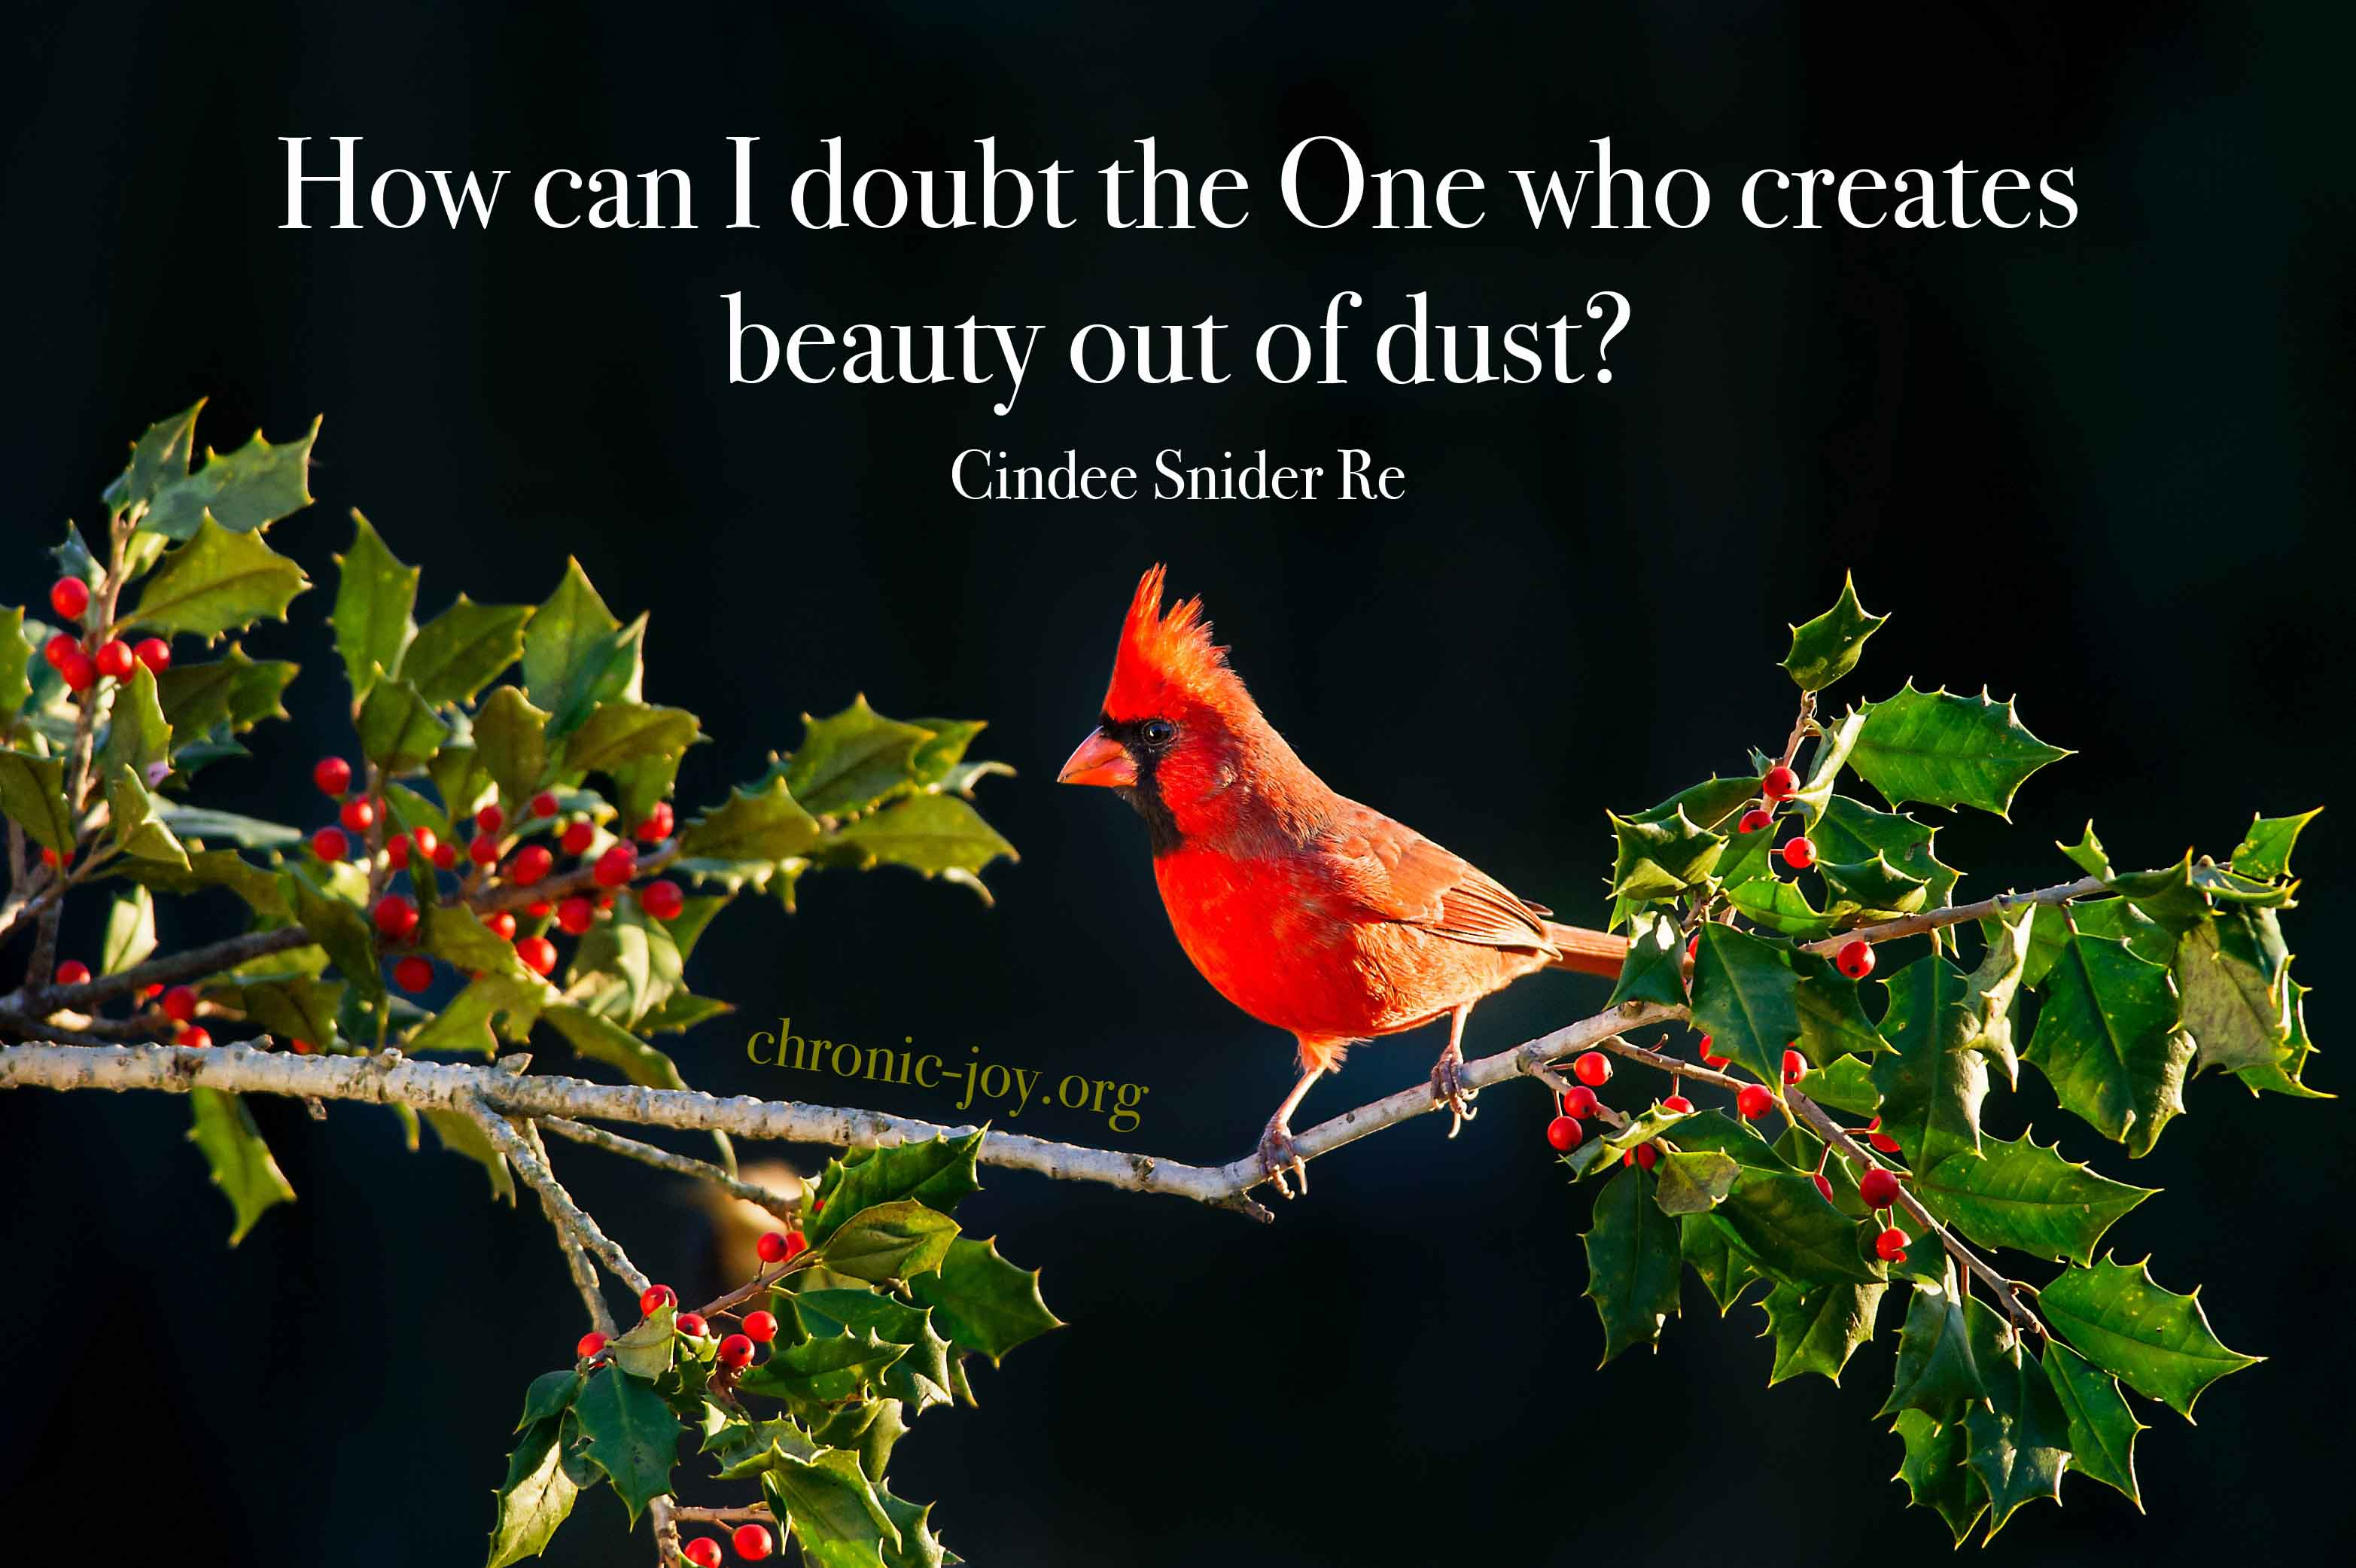 God creates beauty out of dust.